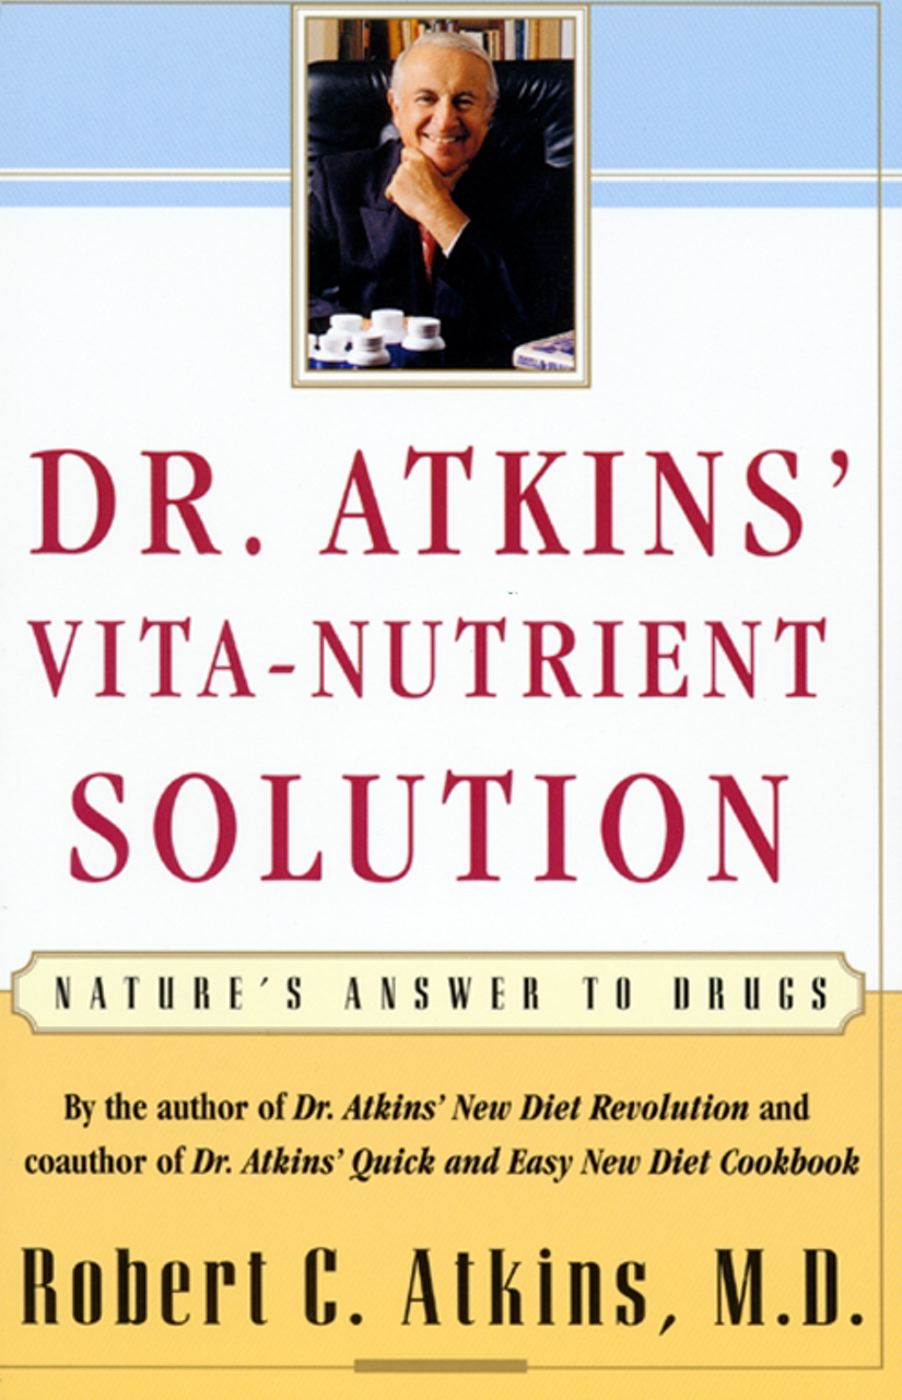 Dr. Atkins' Vita-Nutrient Solution By: Robert C. Atkins